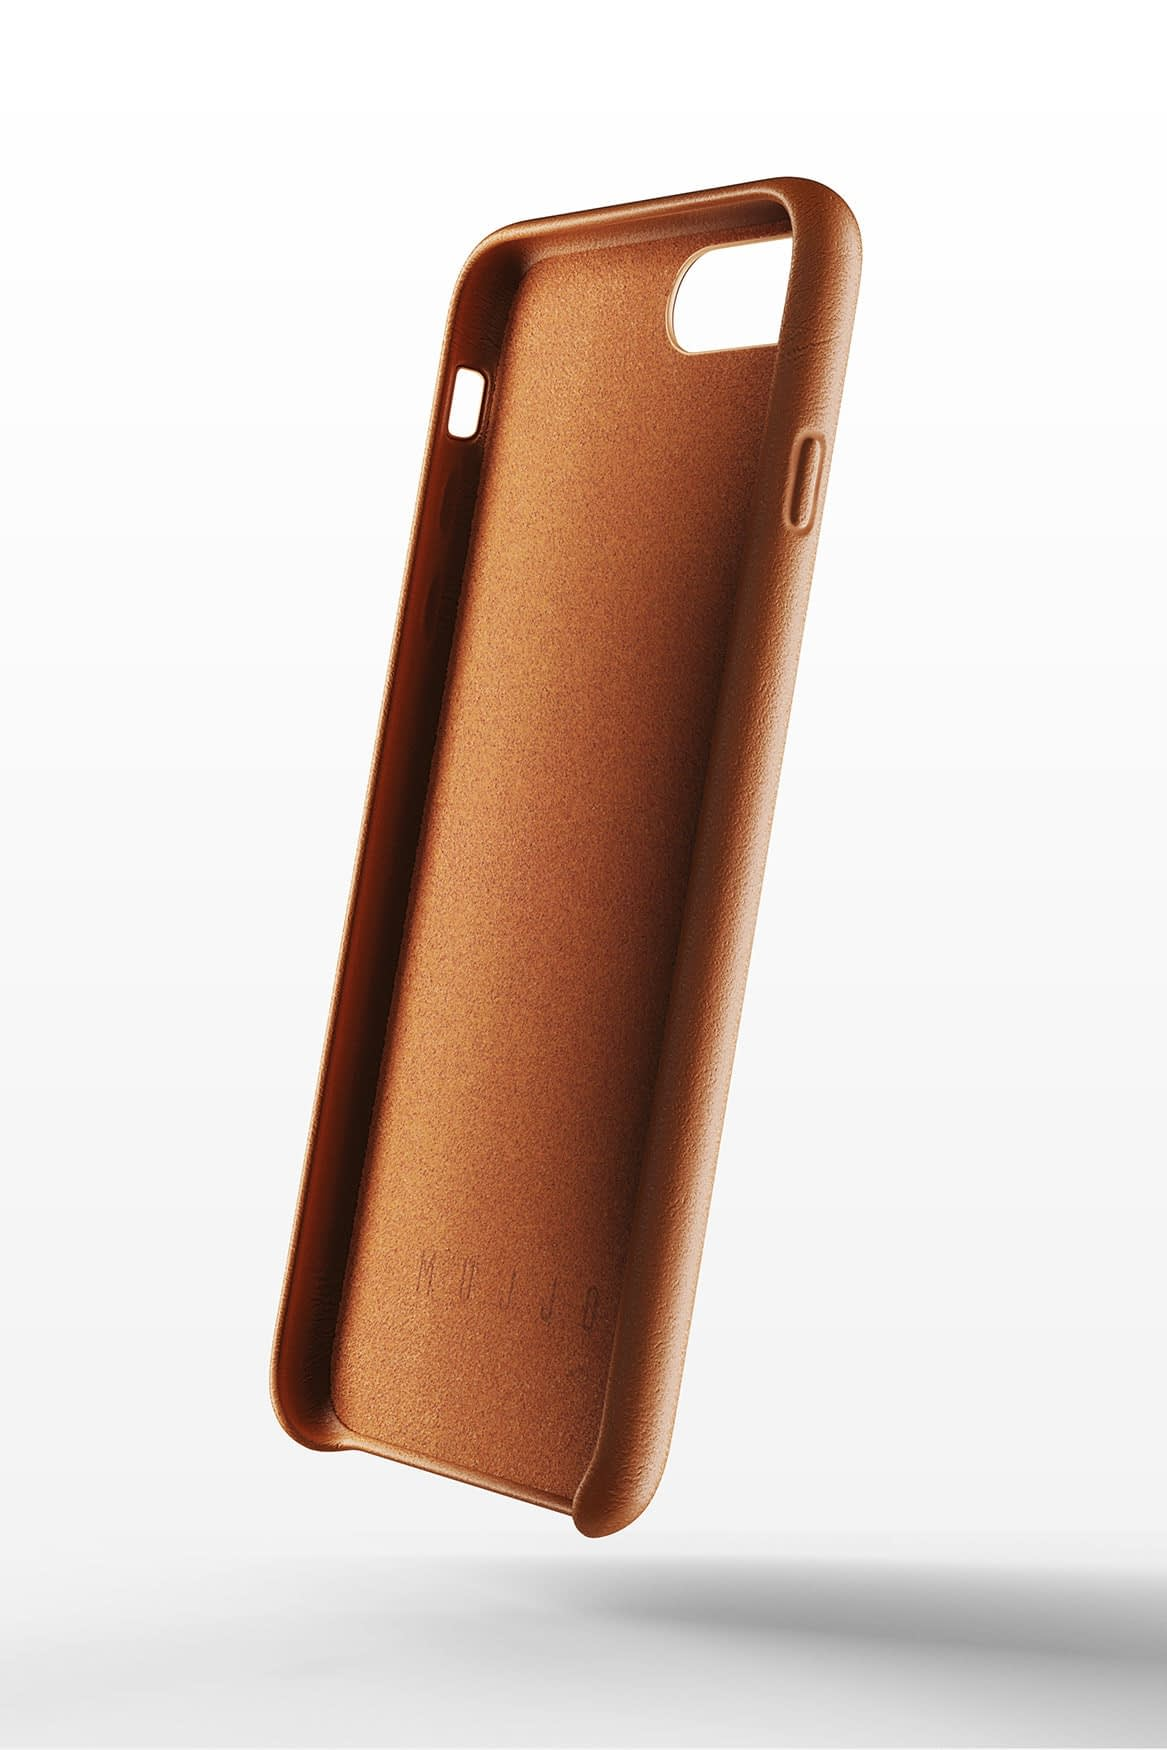 Full leather wallet case for iPhone 8 Plus Tan 02